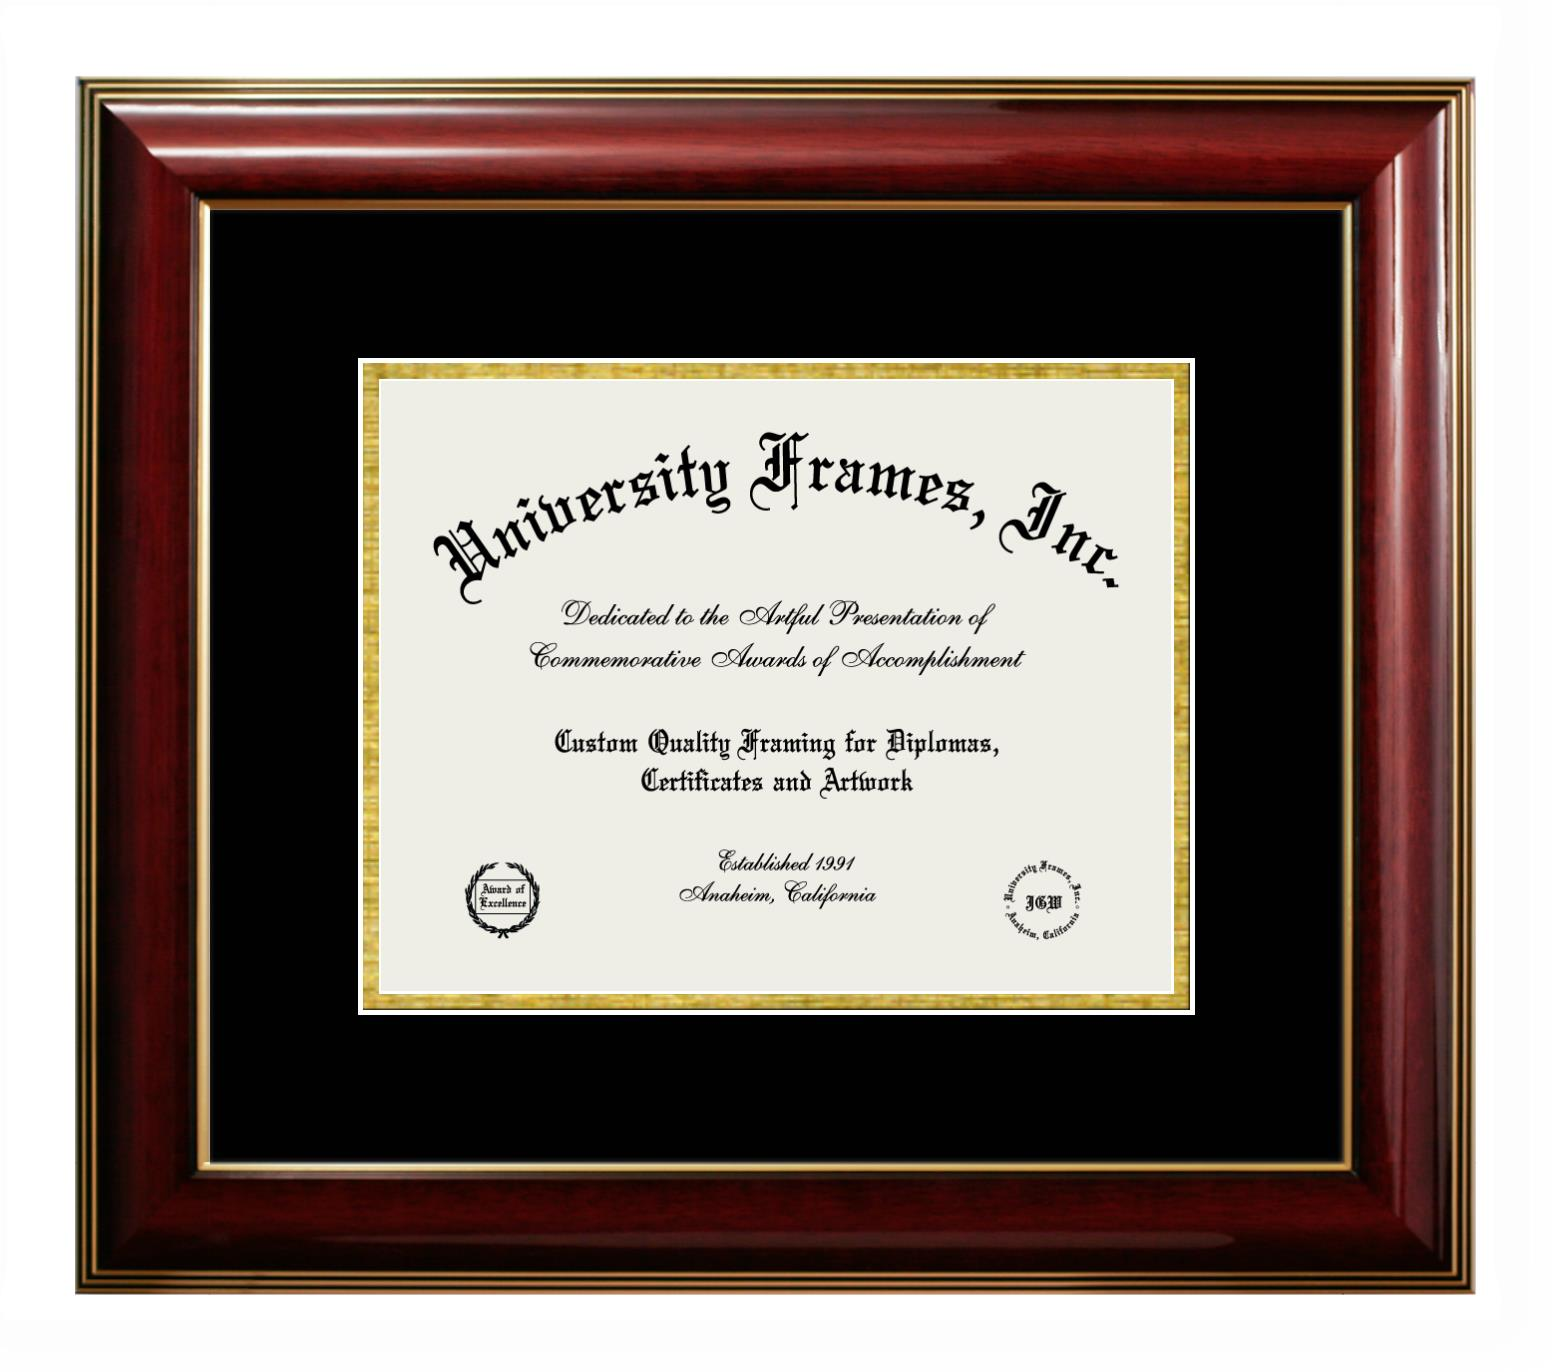 Diploma Frame in Classic Mahogany with Gold Trim with Black & Gold Mats